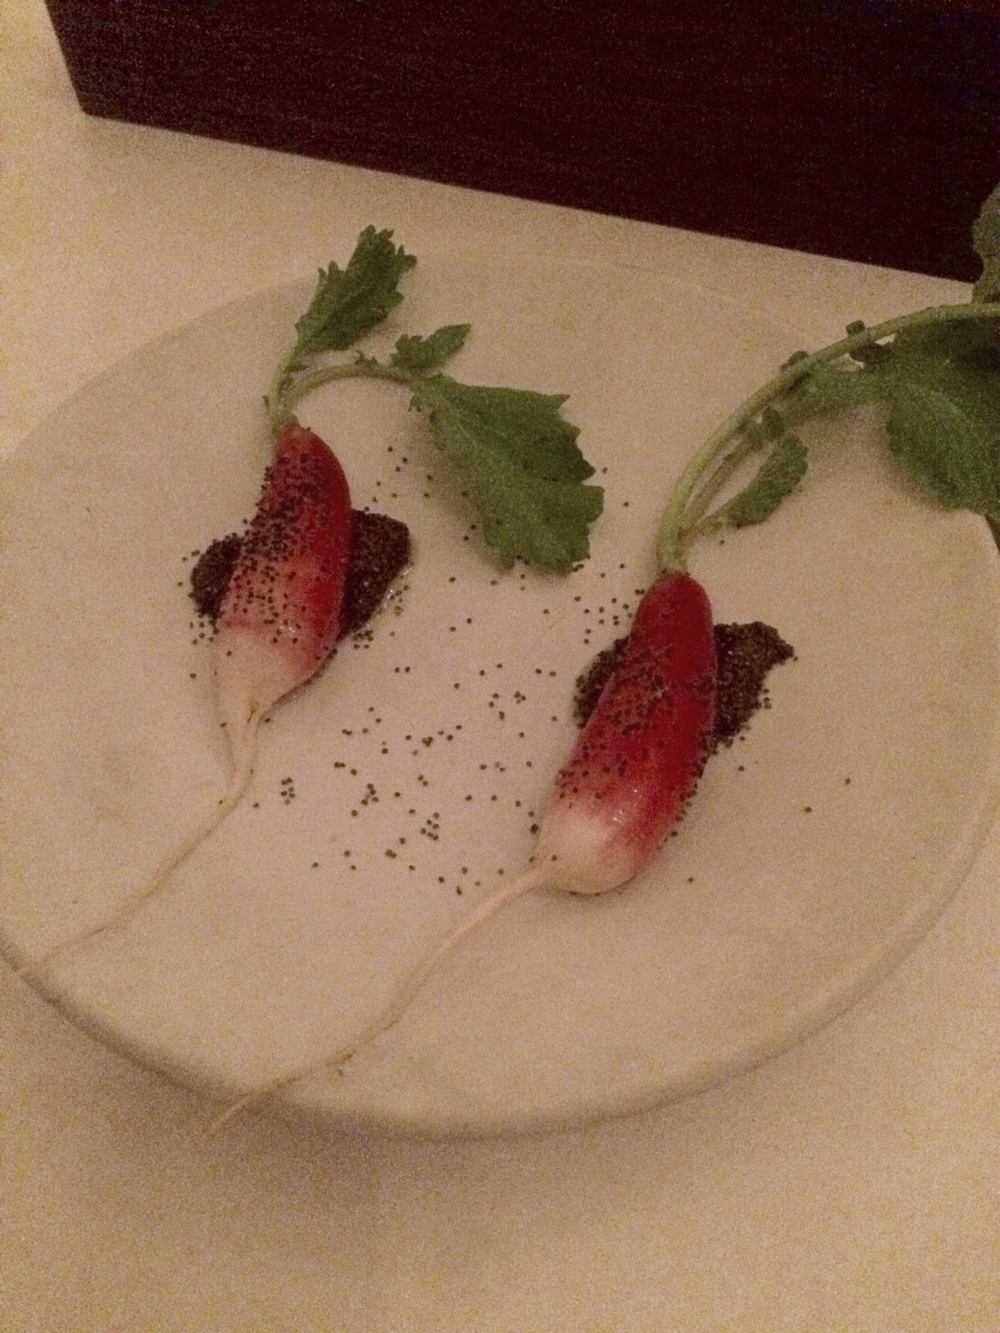 Flea beetle radish with fresh poppy seeds.